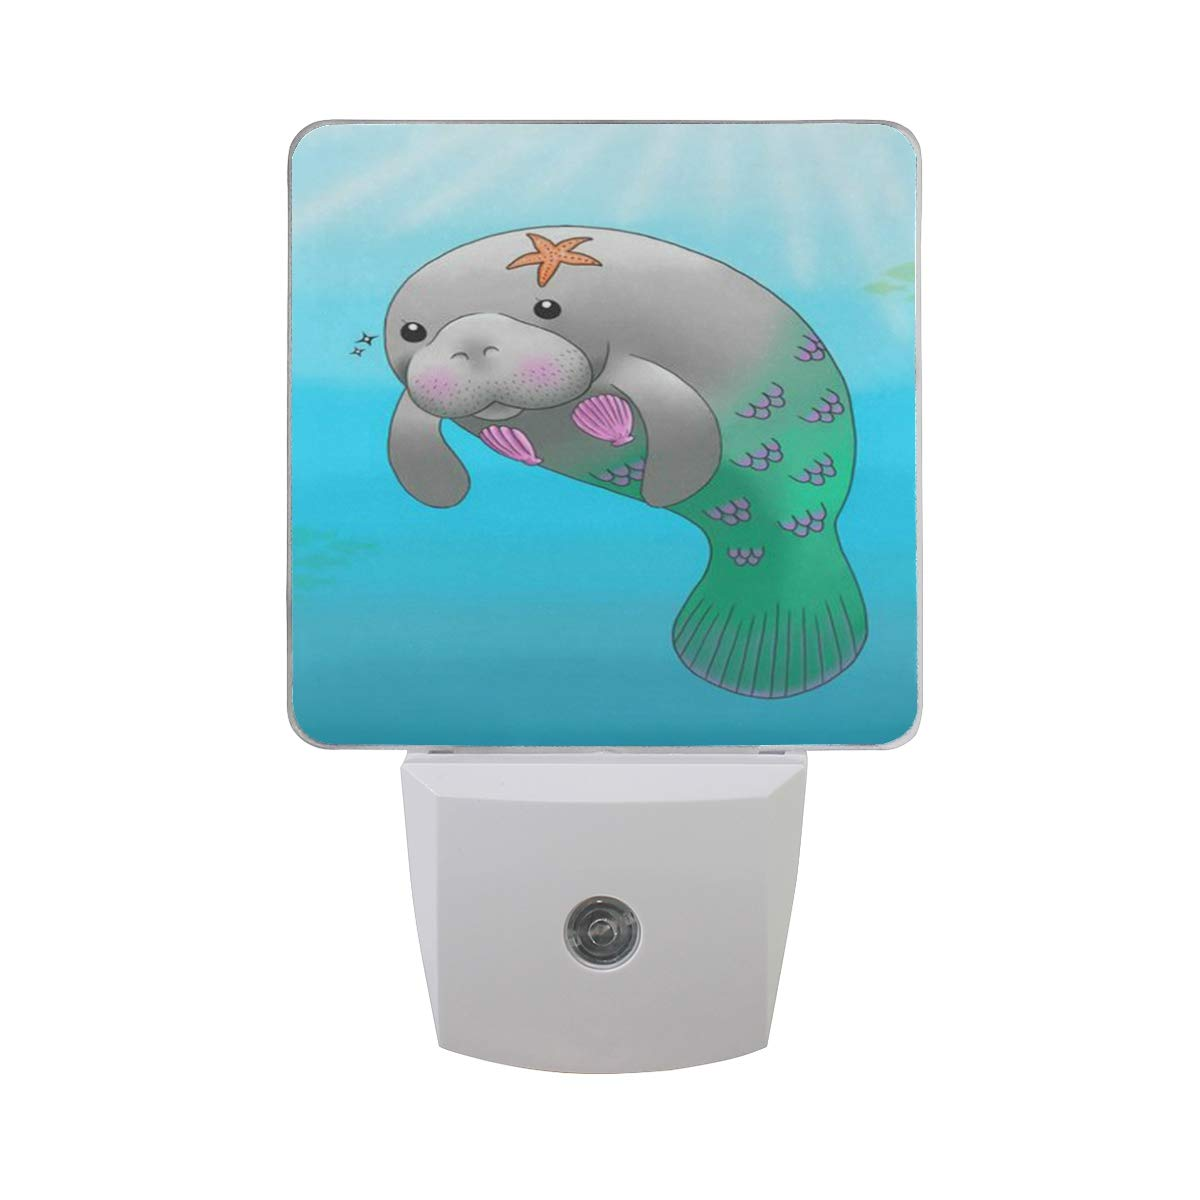 Linomo LED Night Light Lamp Cute Sea Cow Manatee Mermaid Auto Senor Nightlight Plug in for Kids Adults Boys Girls Bedroom Decor, 2 Pack